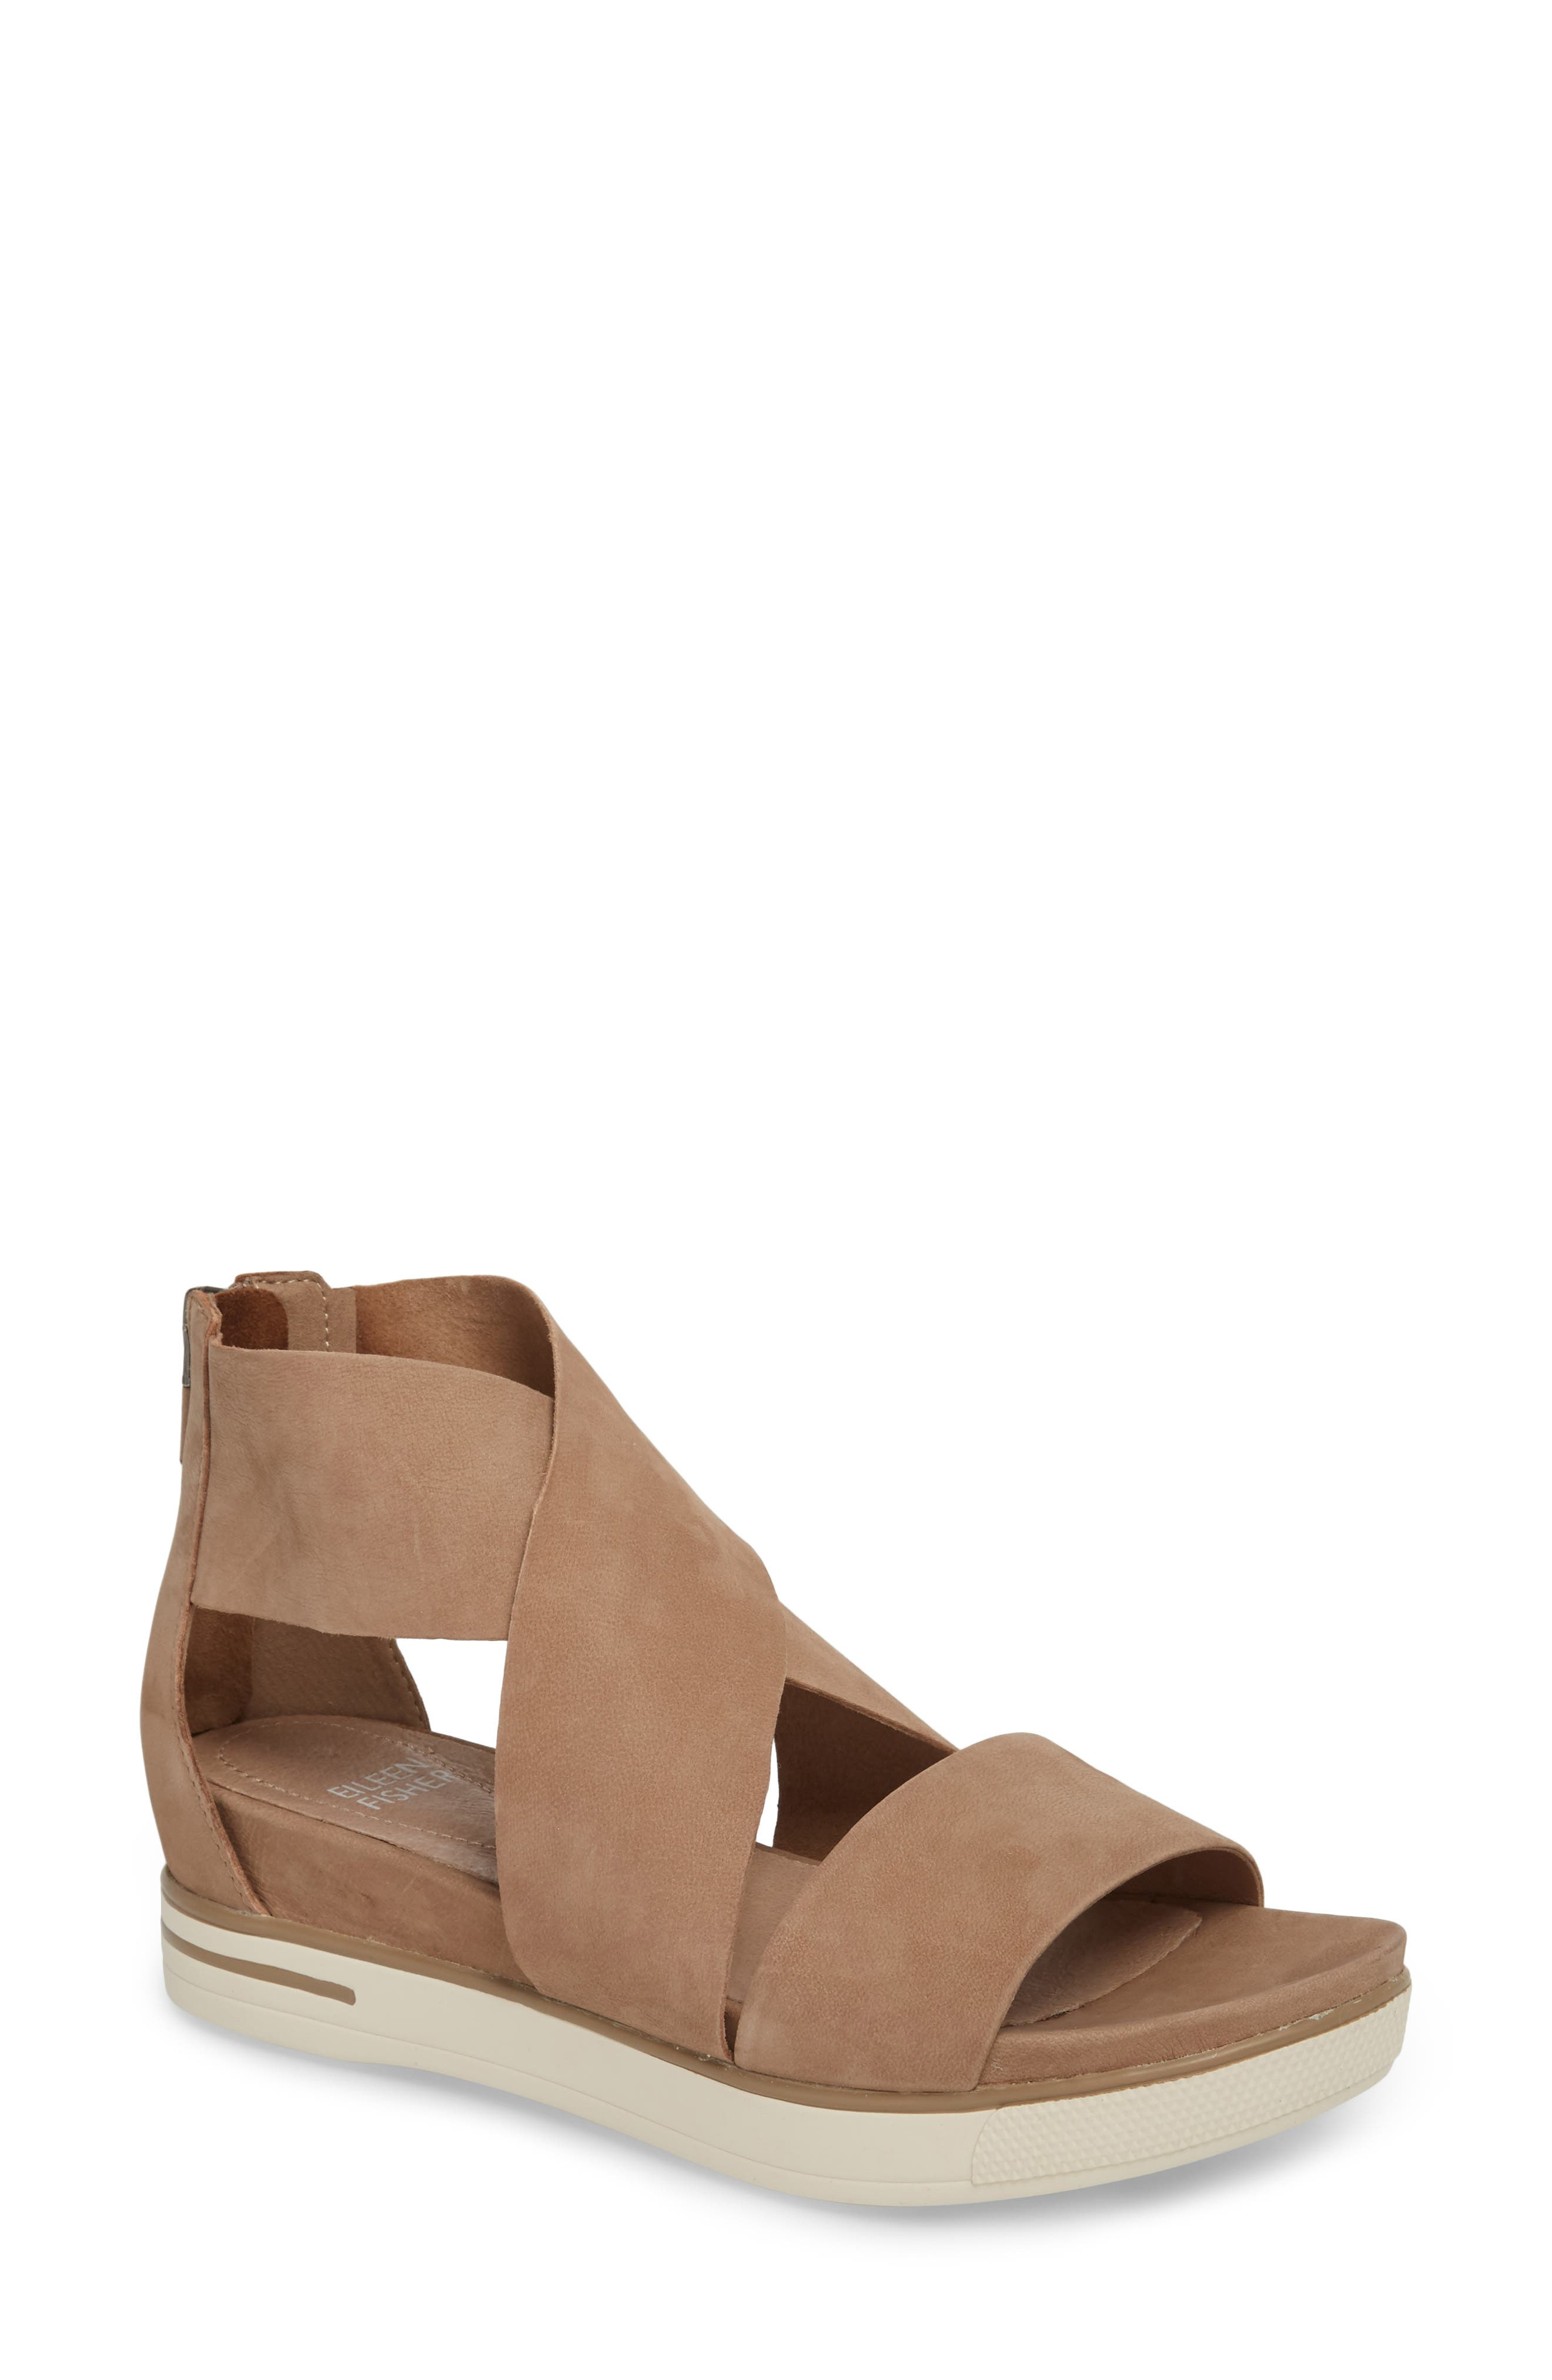 debd7e8fca84 Eileen Fisher Shoes